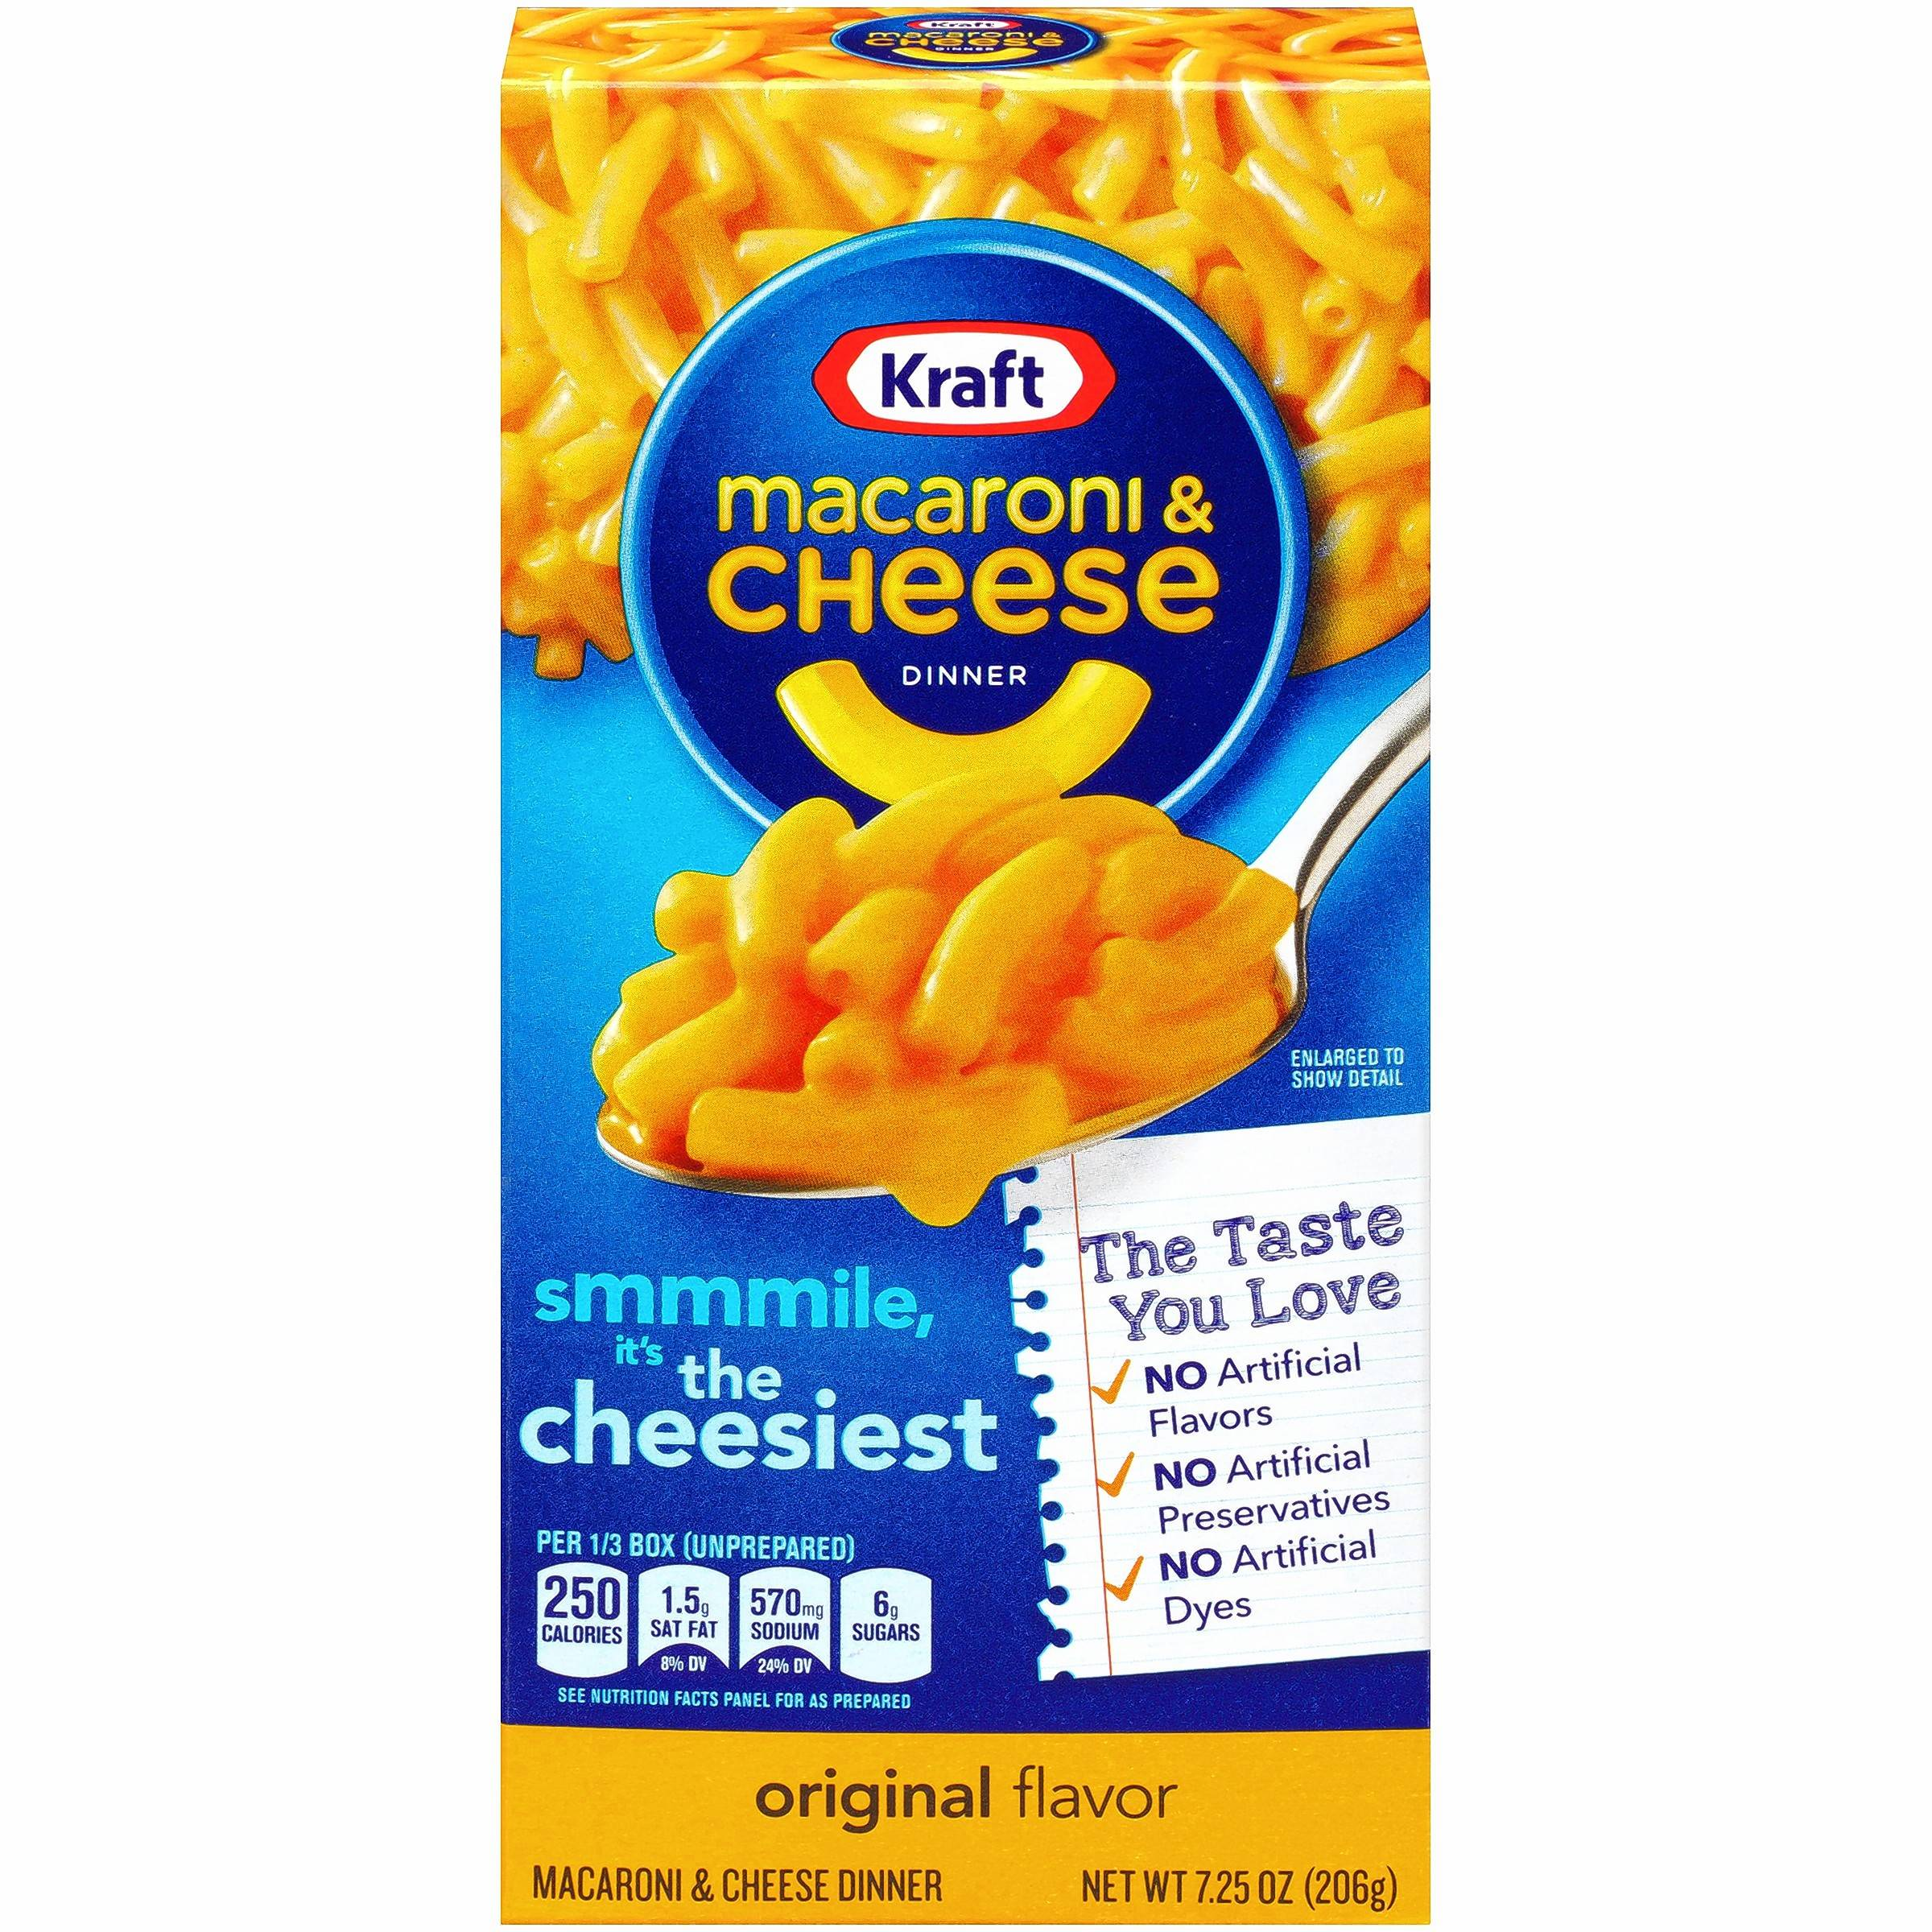 Kraft Mac & Cheese, an item that has been around for more than 80 years, has alternated featuring a spoon and fork on the front of its box.